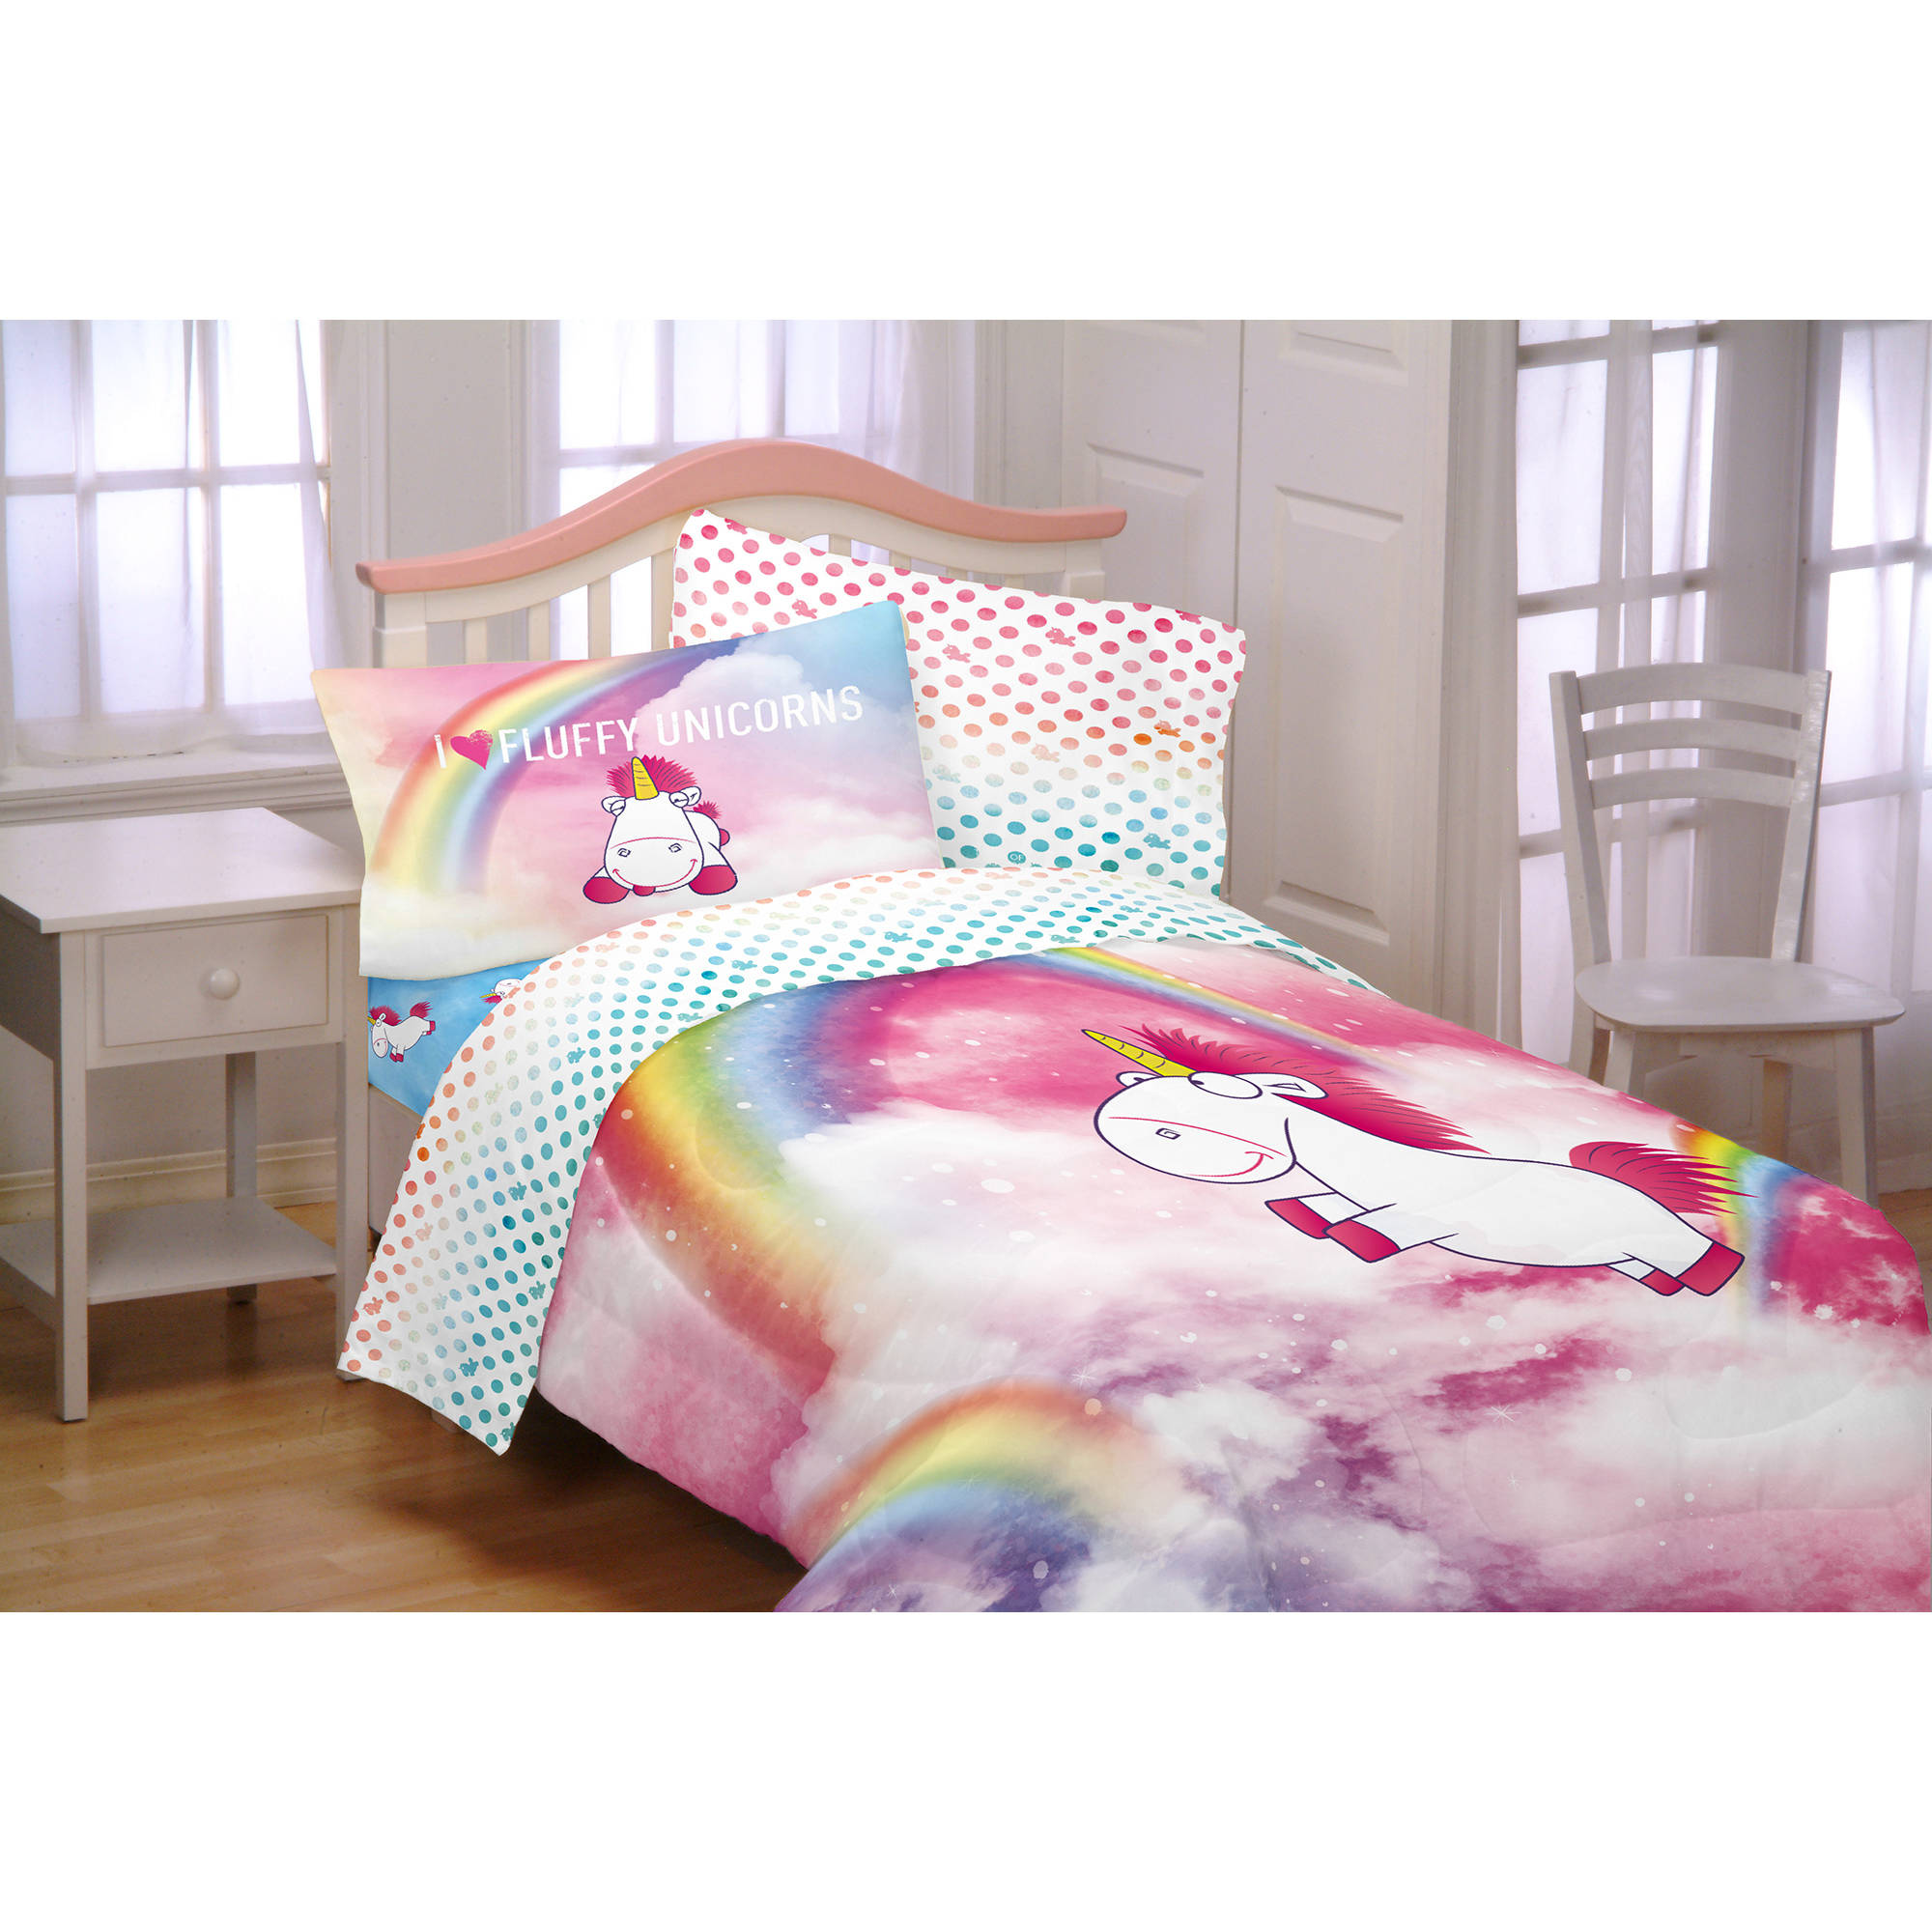 Despicable Me Minons Fluffy The Unicorn Fluffy Rainbows Kids Bedding Twin Full Reversible... by Franco